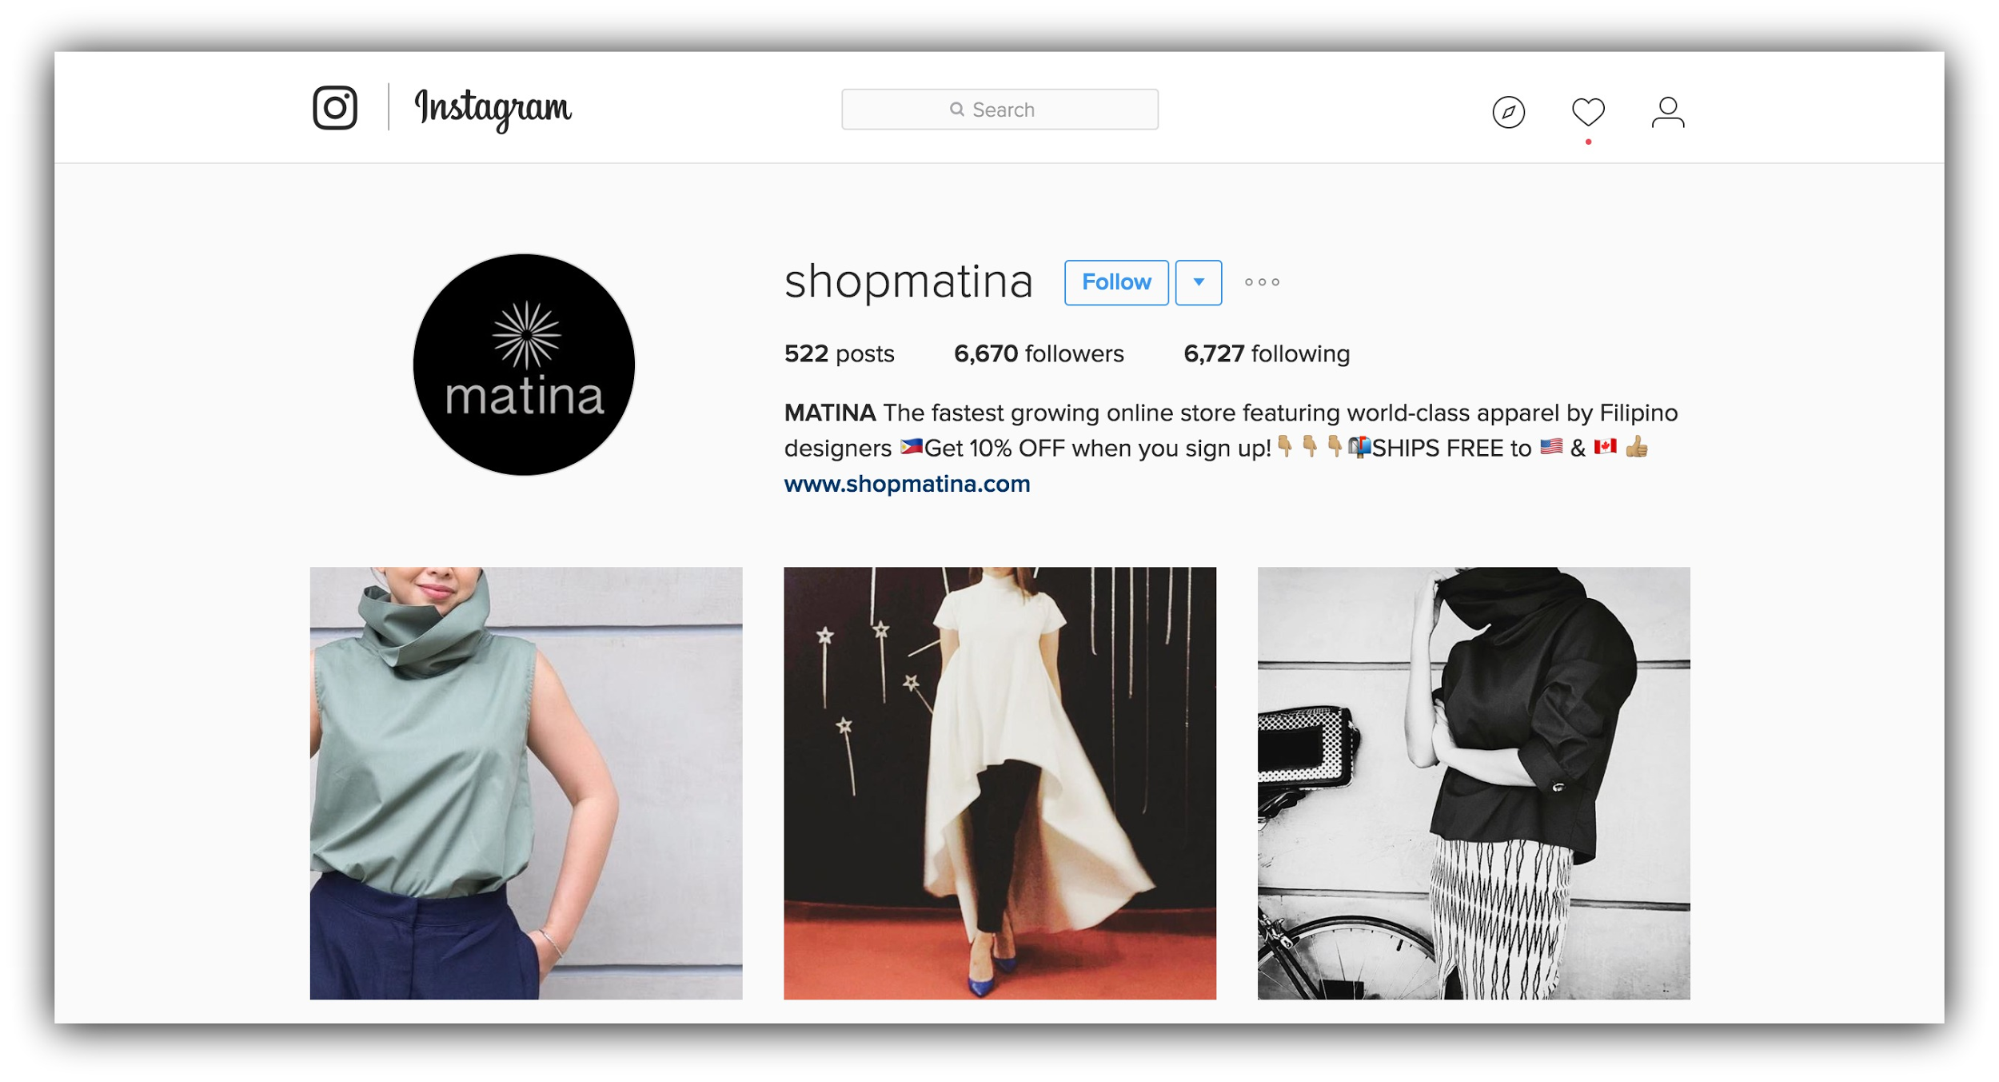 shopmatina instagram